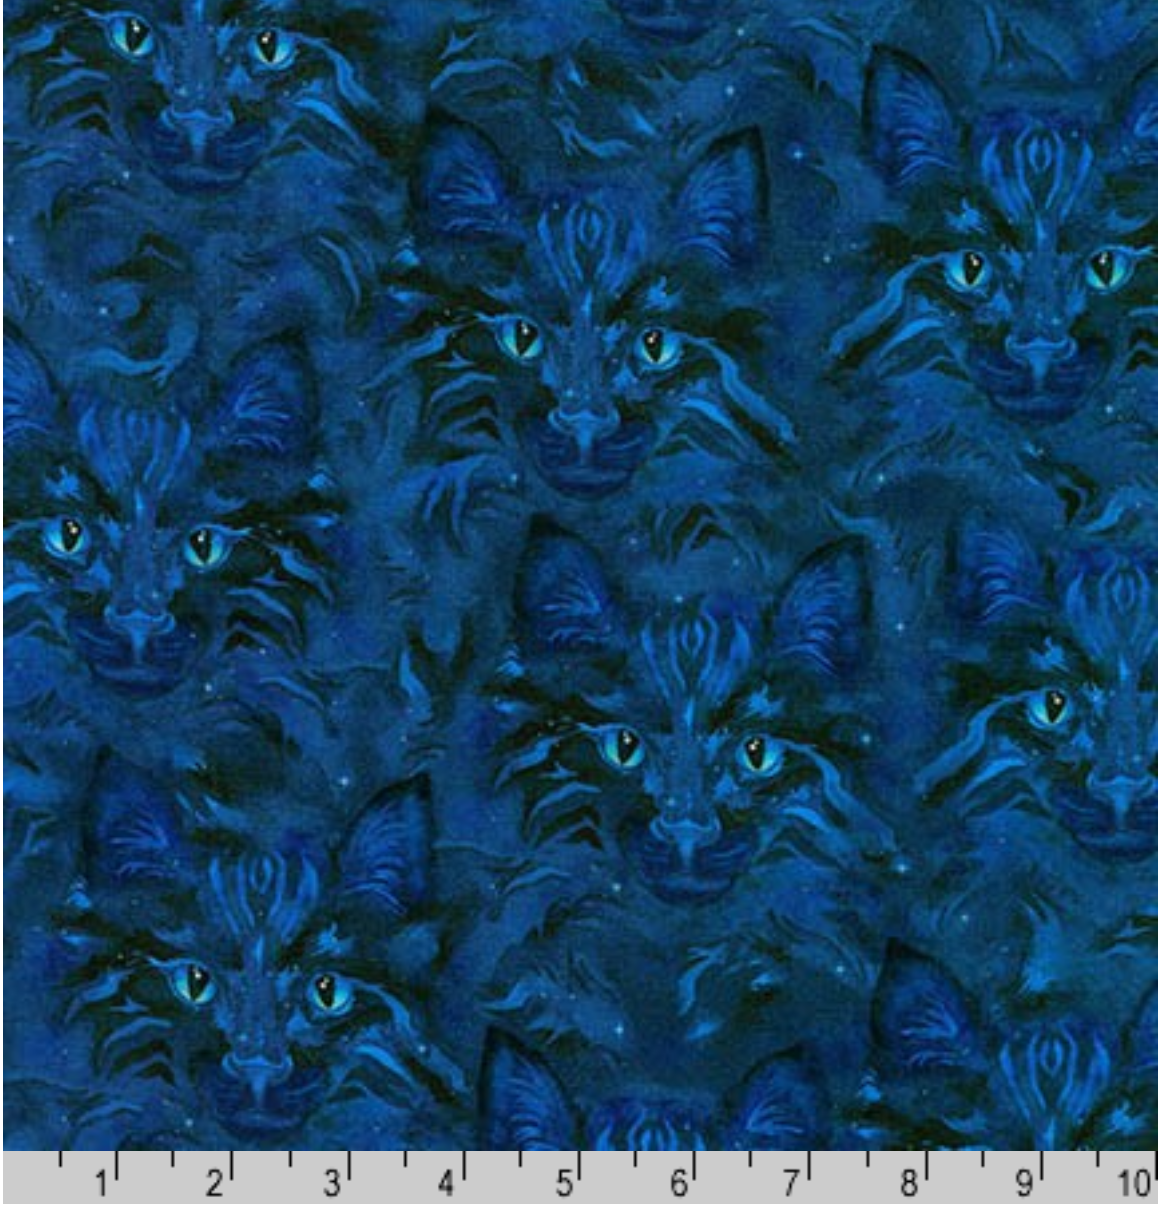 Be Pawsitive on  MIDNIGHT Fabric by the Yard